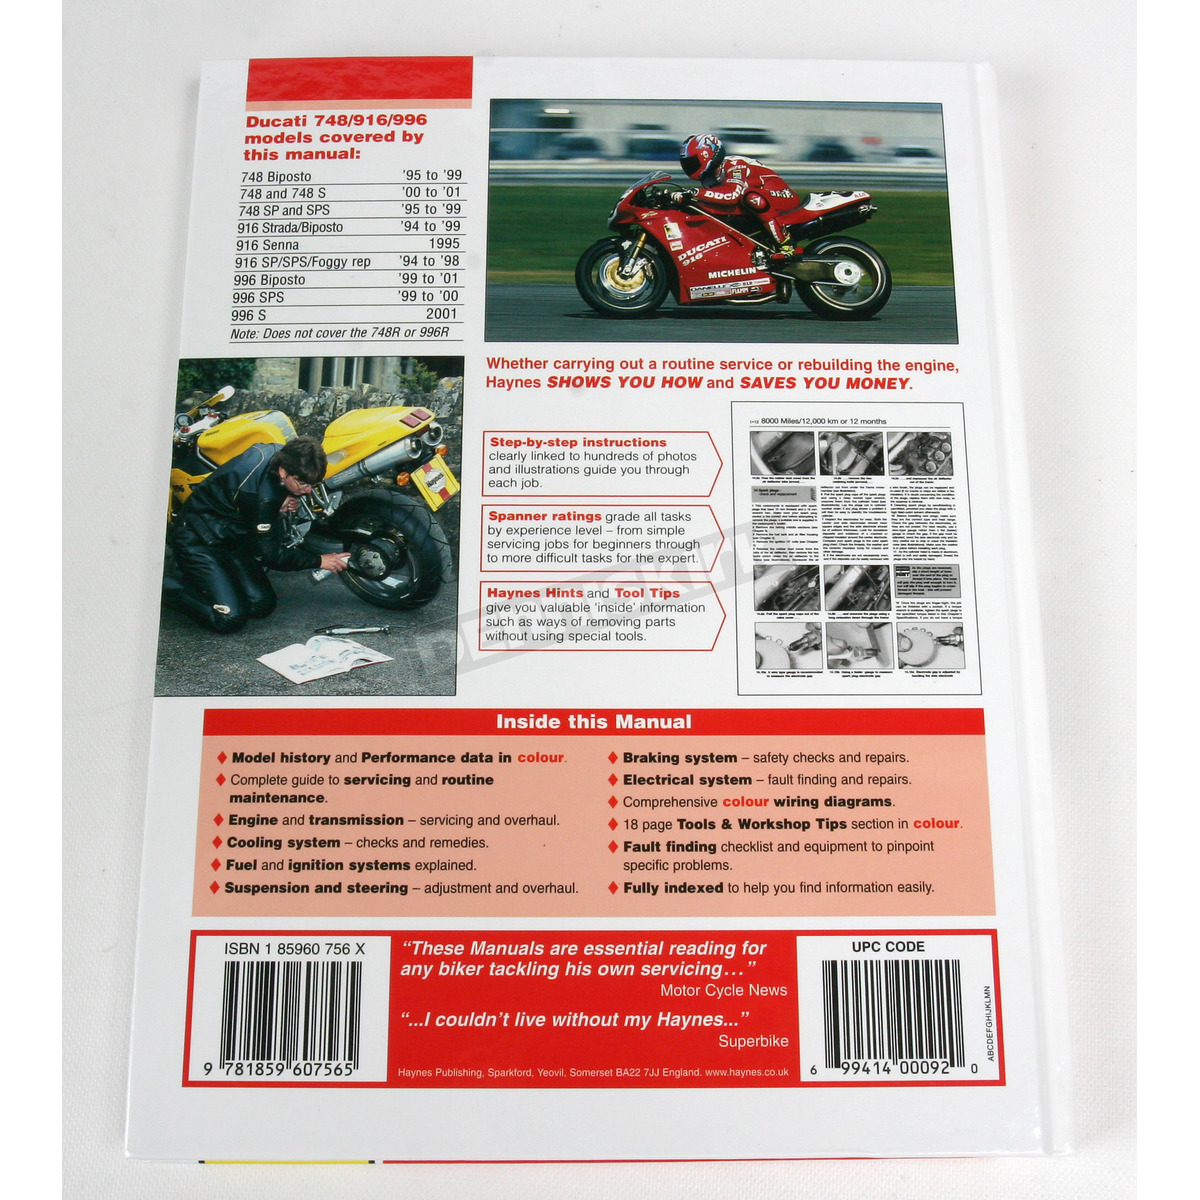 Haynes Ducati Motorcycle Repair Manual 3756 Sport Bike St4 Wiring Diagram